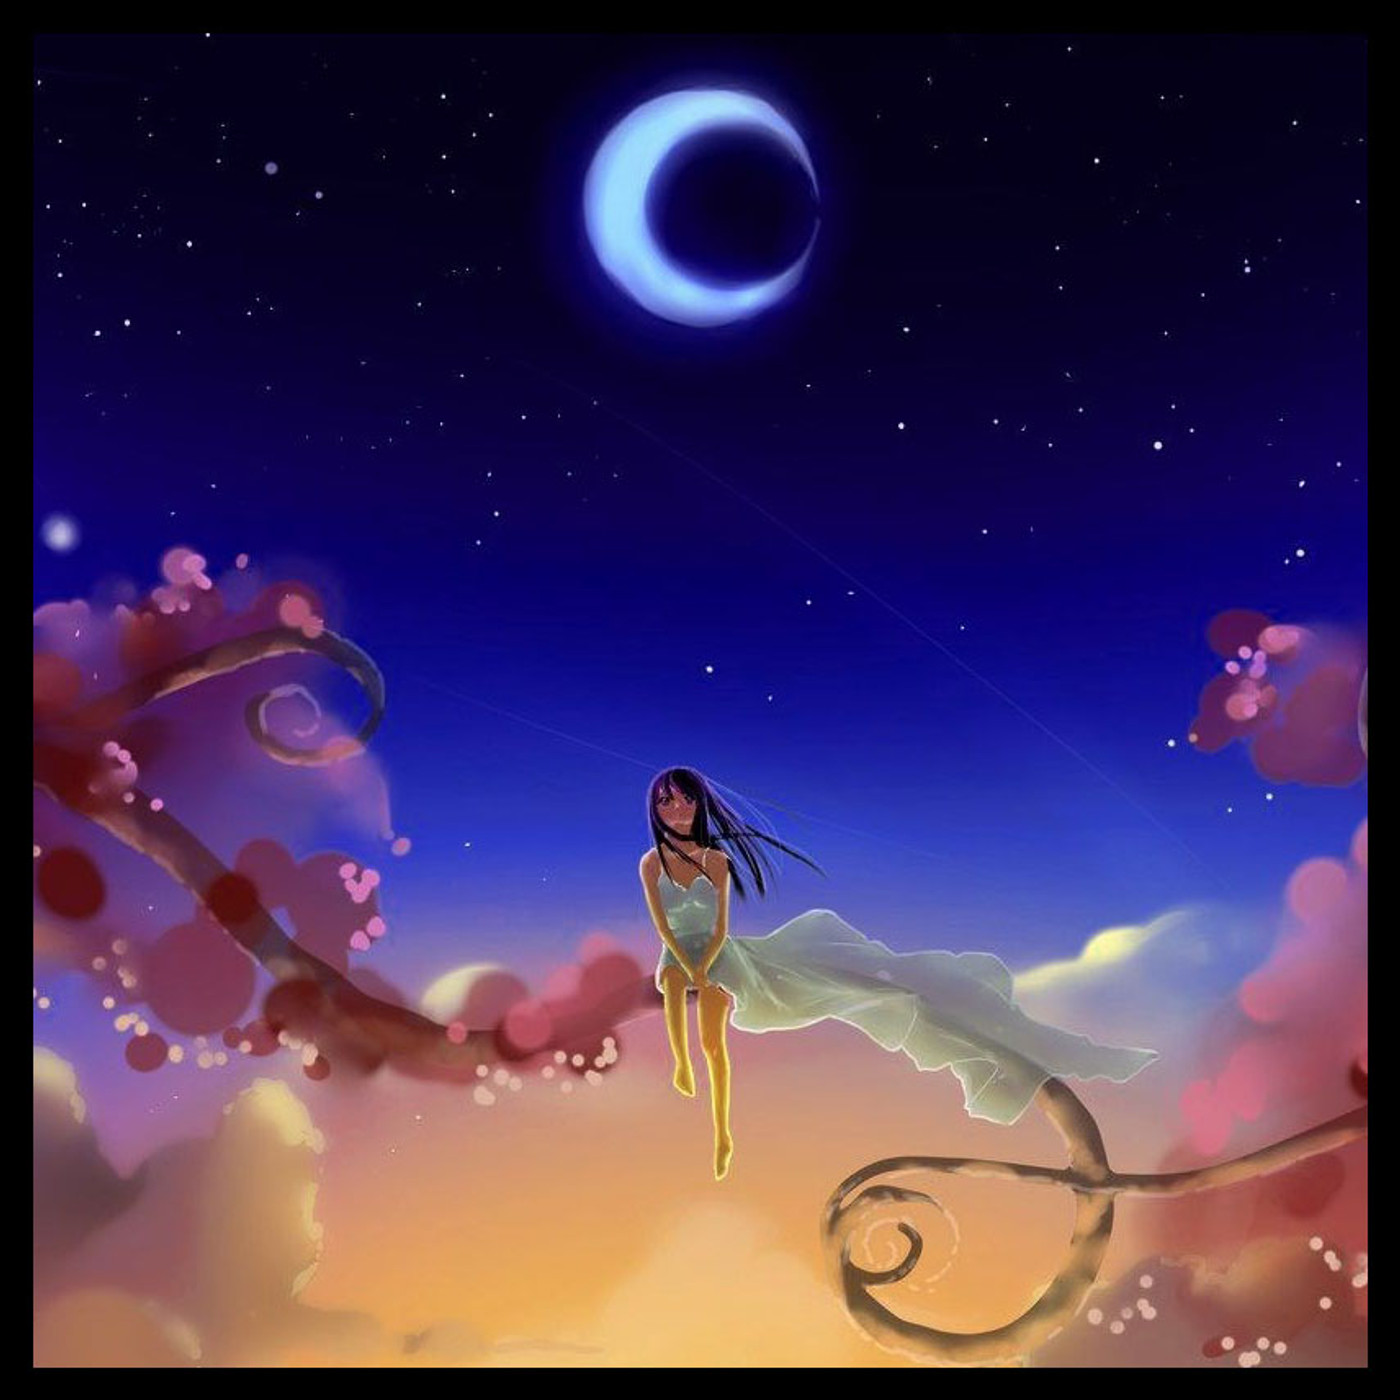 Lucid Dreams Spell, Guide Your Dreams Wherever You Want